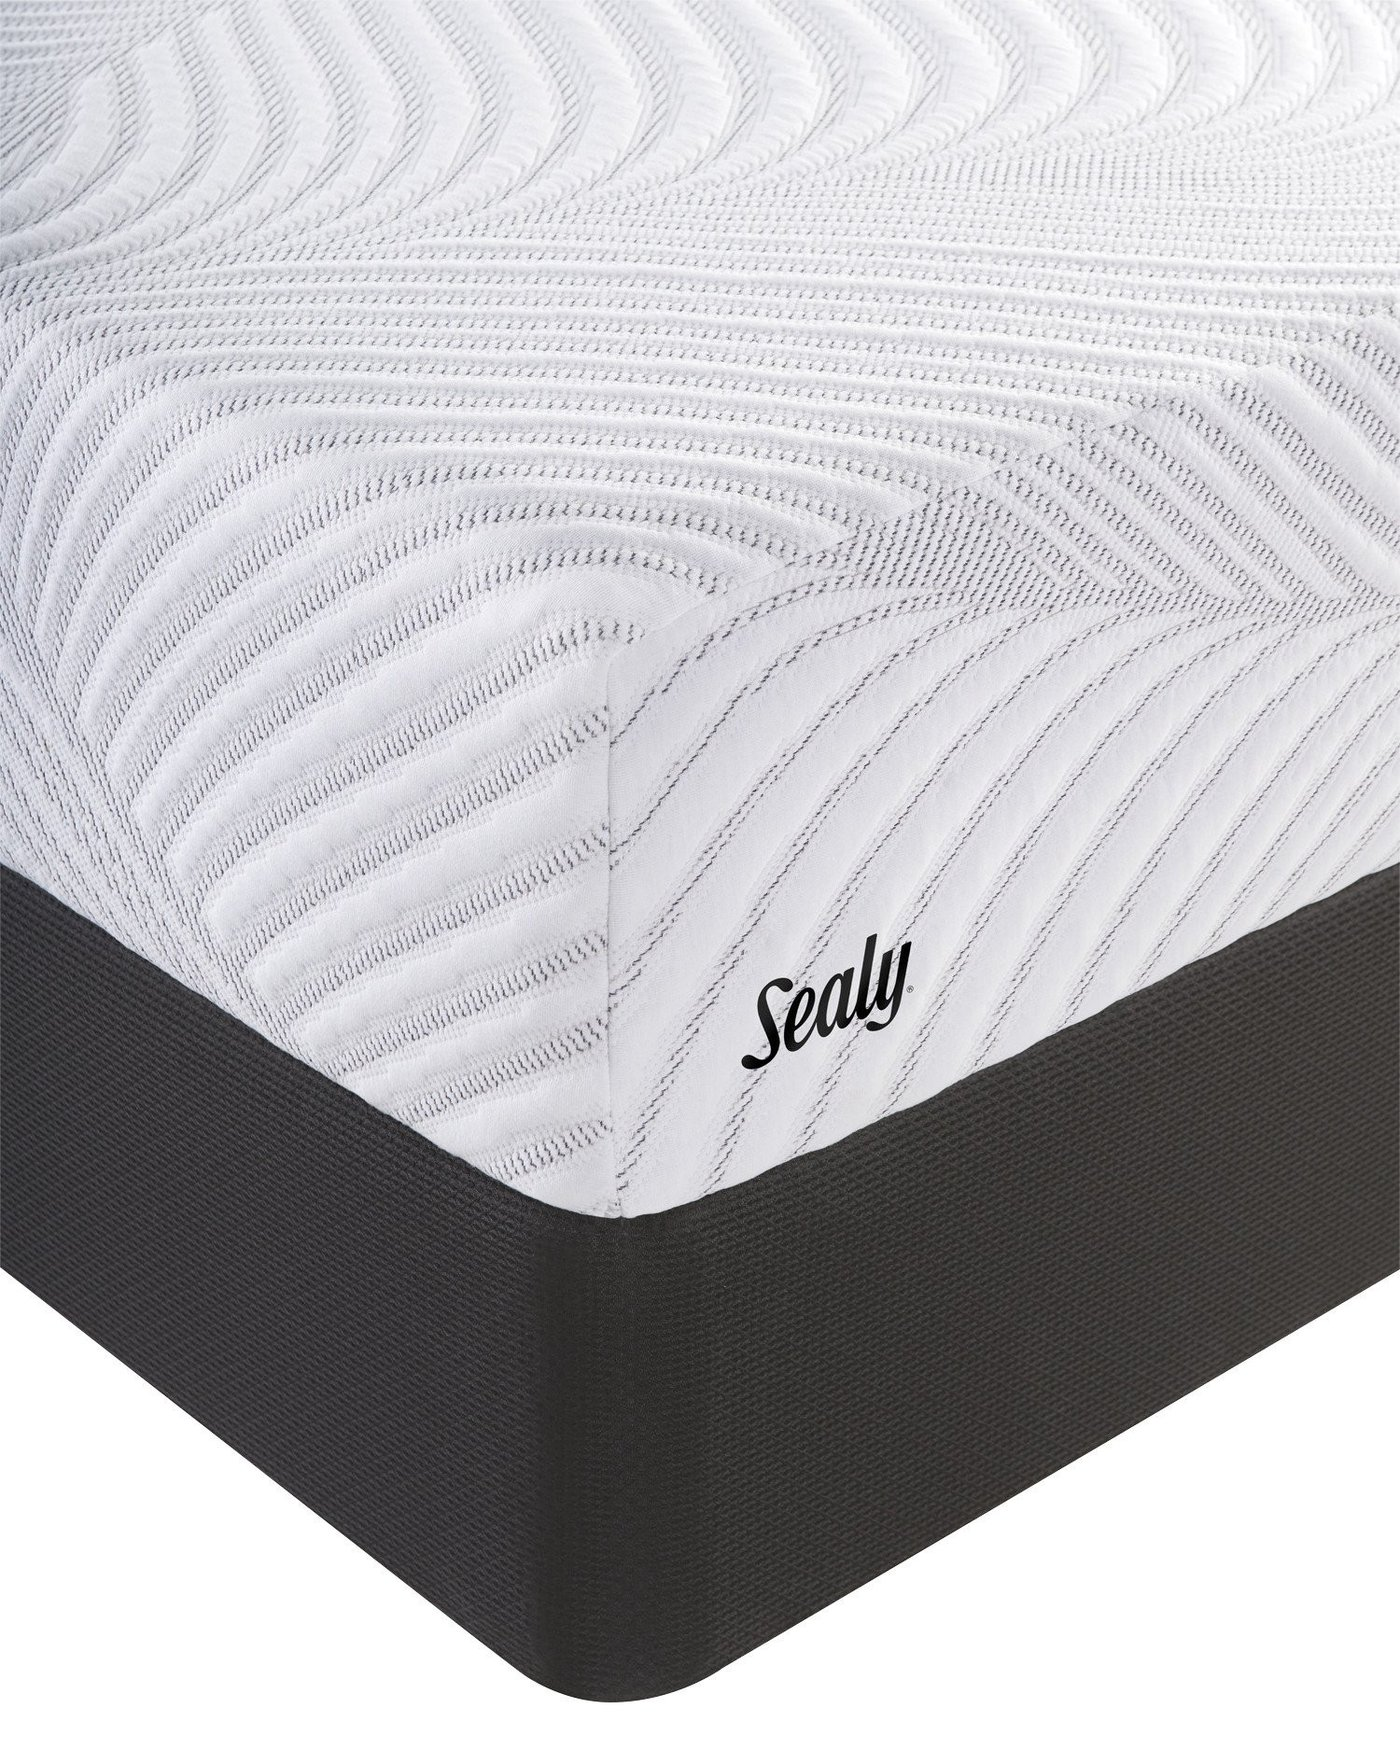 Sealy Treat Cushion Firm Memory Foam Mattress Mattress Barn